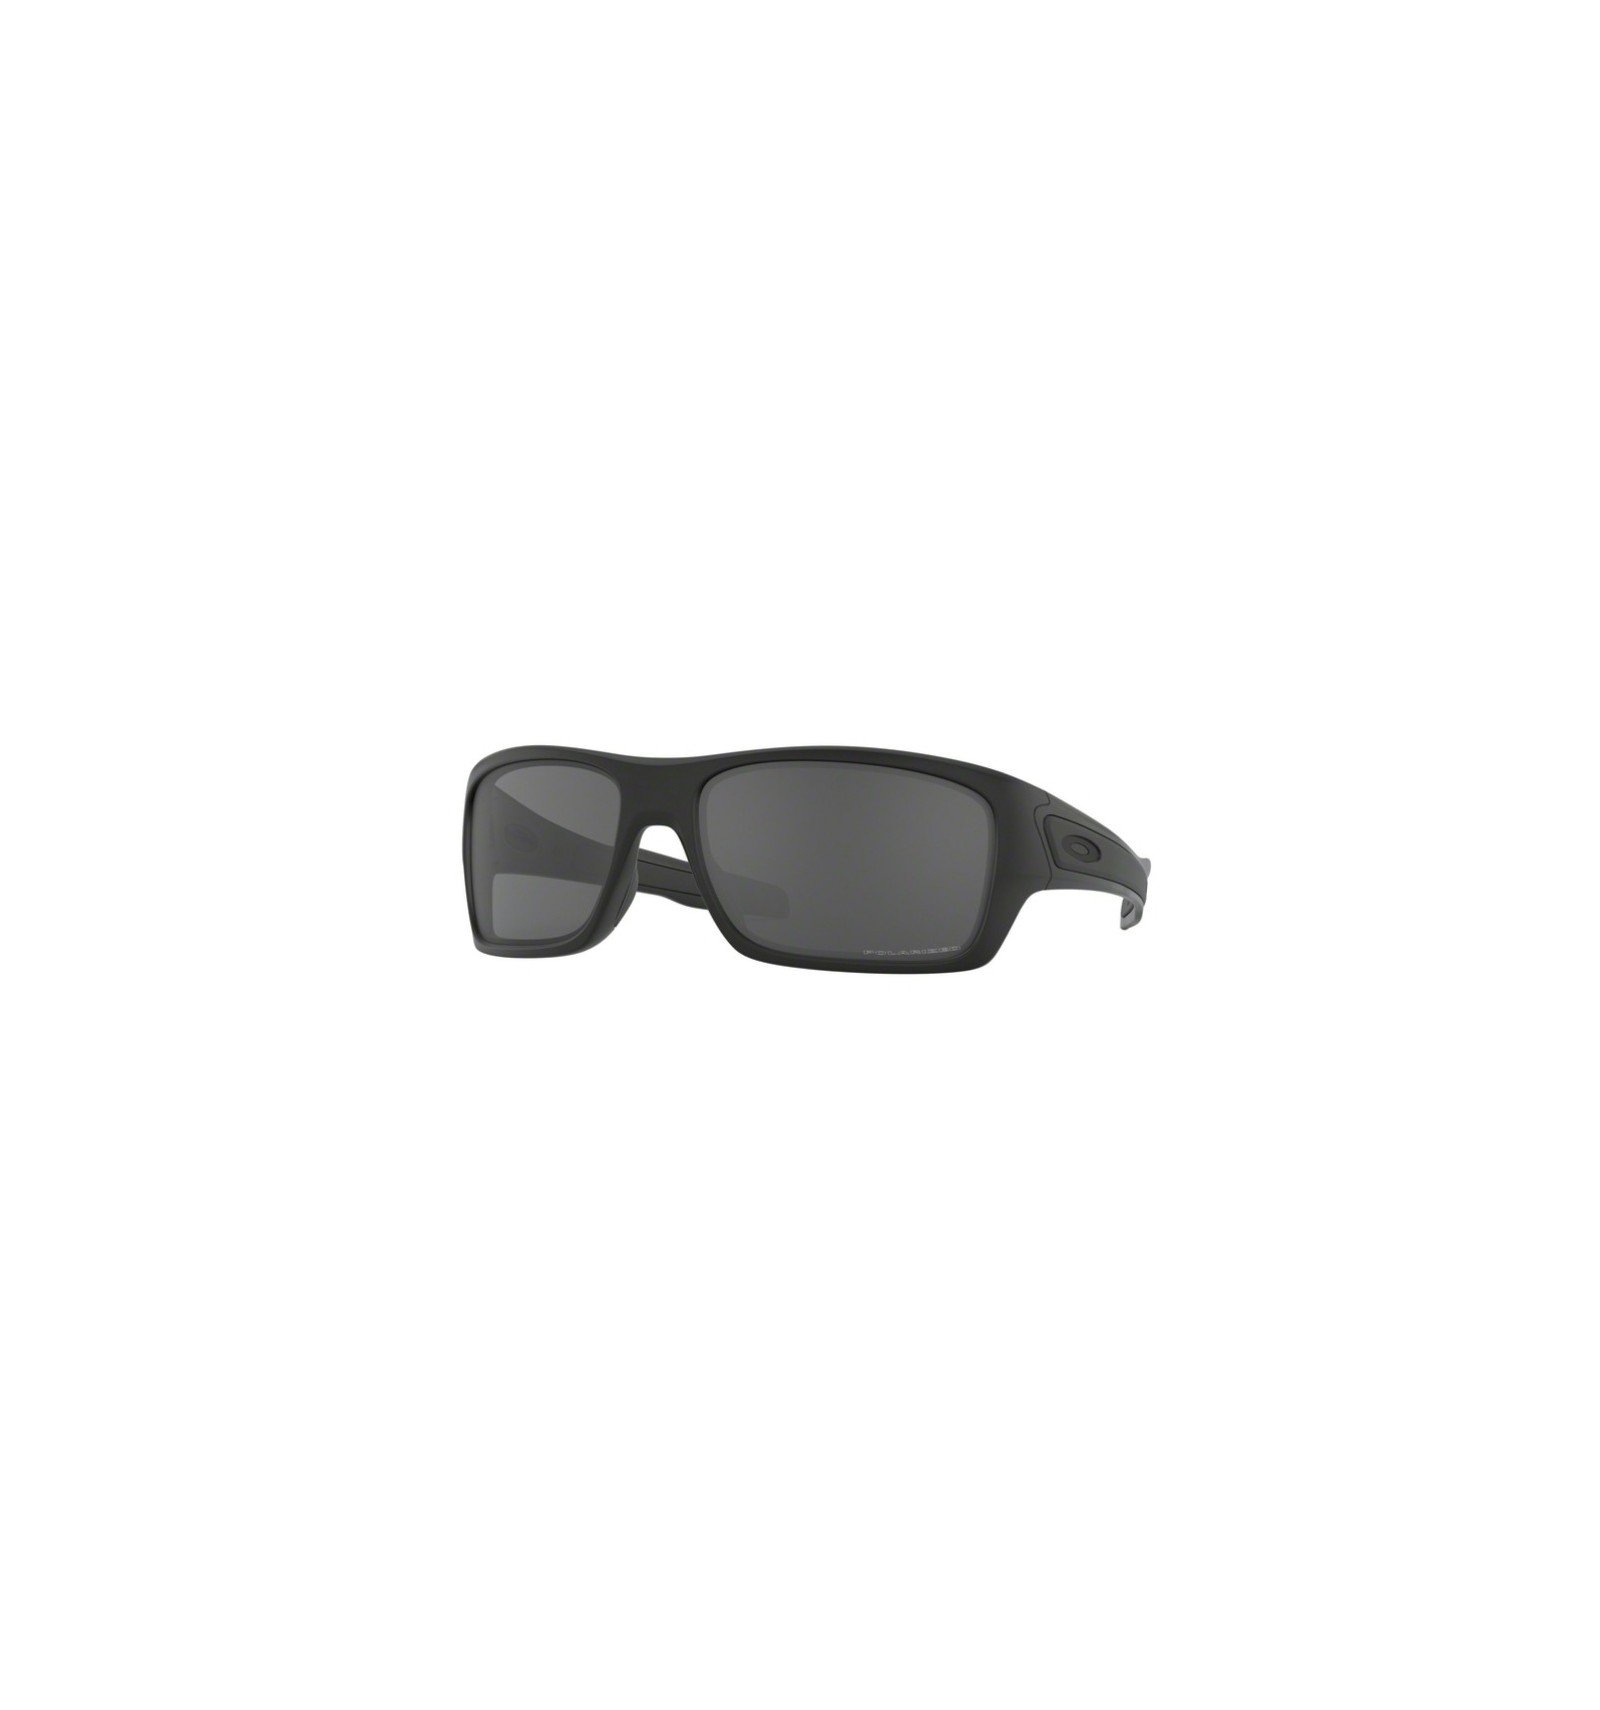 46e12d7f65 Gafas de sol OAKLEY 9263 TURBINE Matte Black / Grey Polarized (9263-07 )